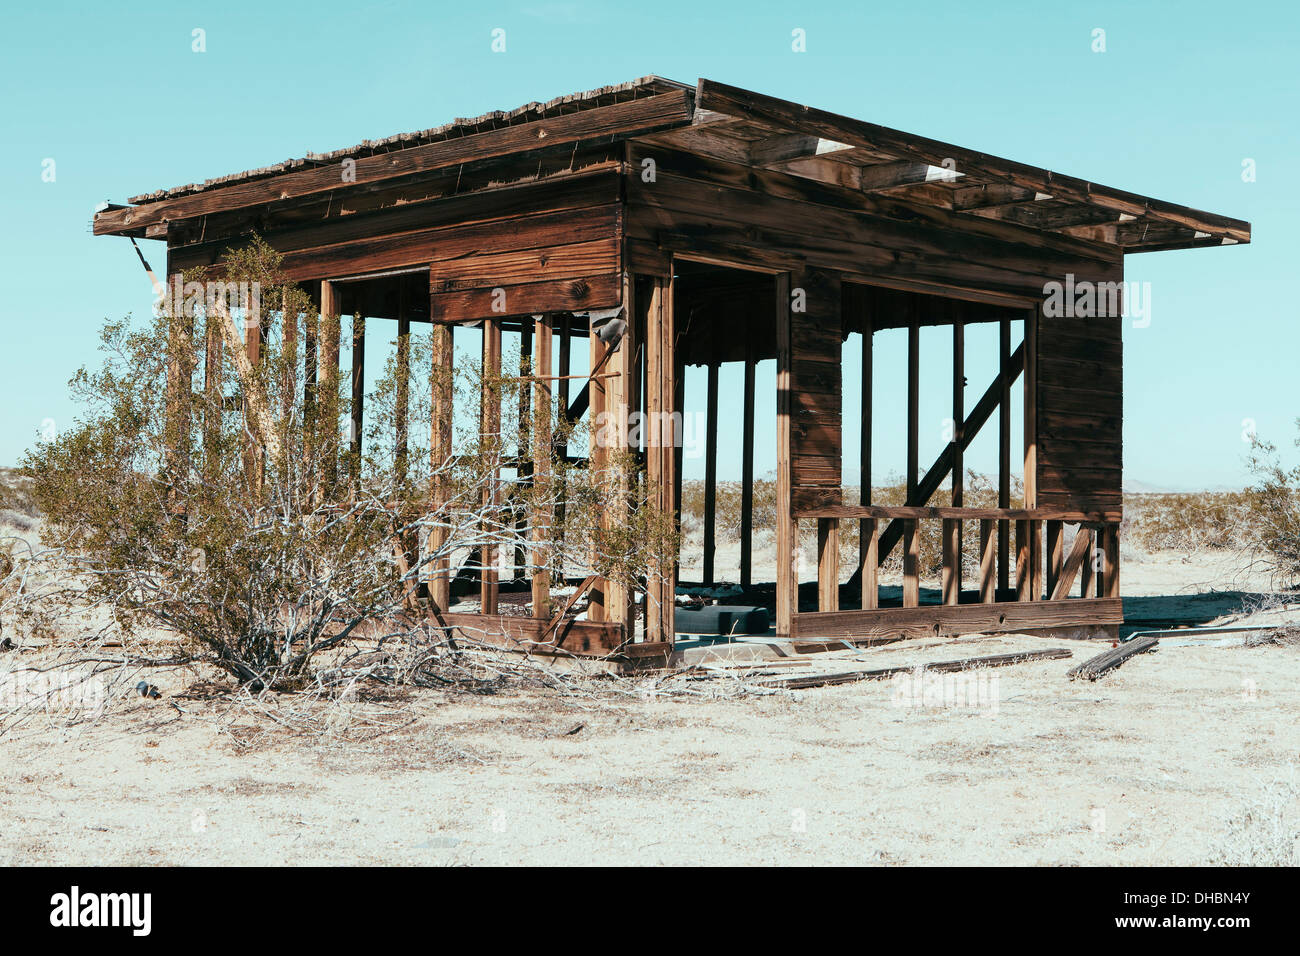 A small abandoned building in the Mojave desert landscape. - Stock Image